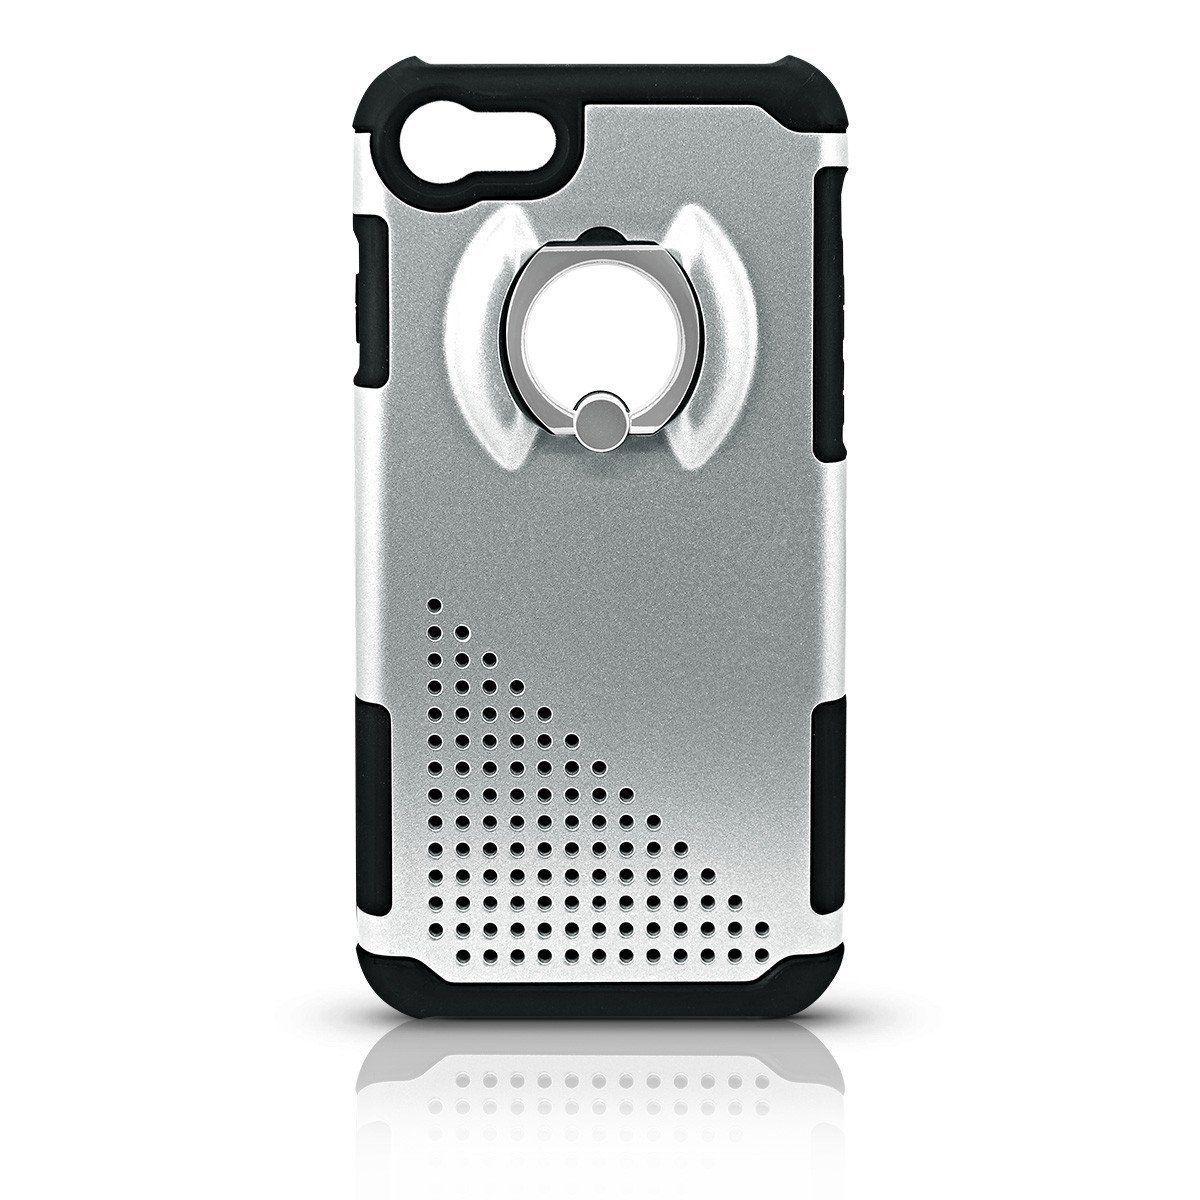 Dot Ring Case for i6p - Silver